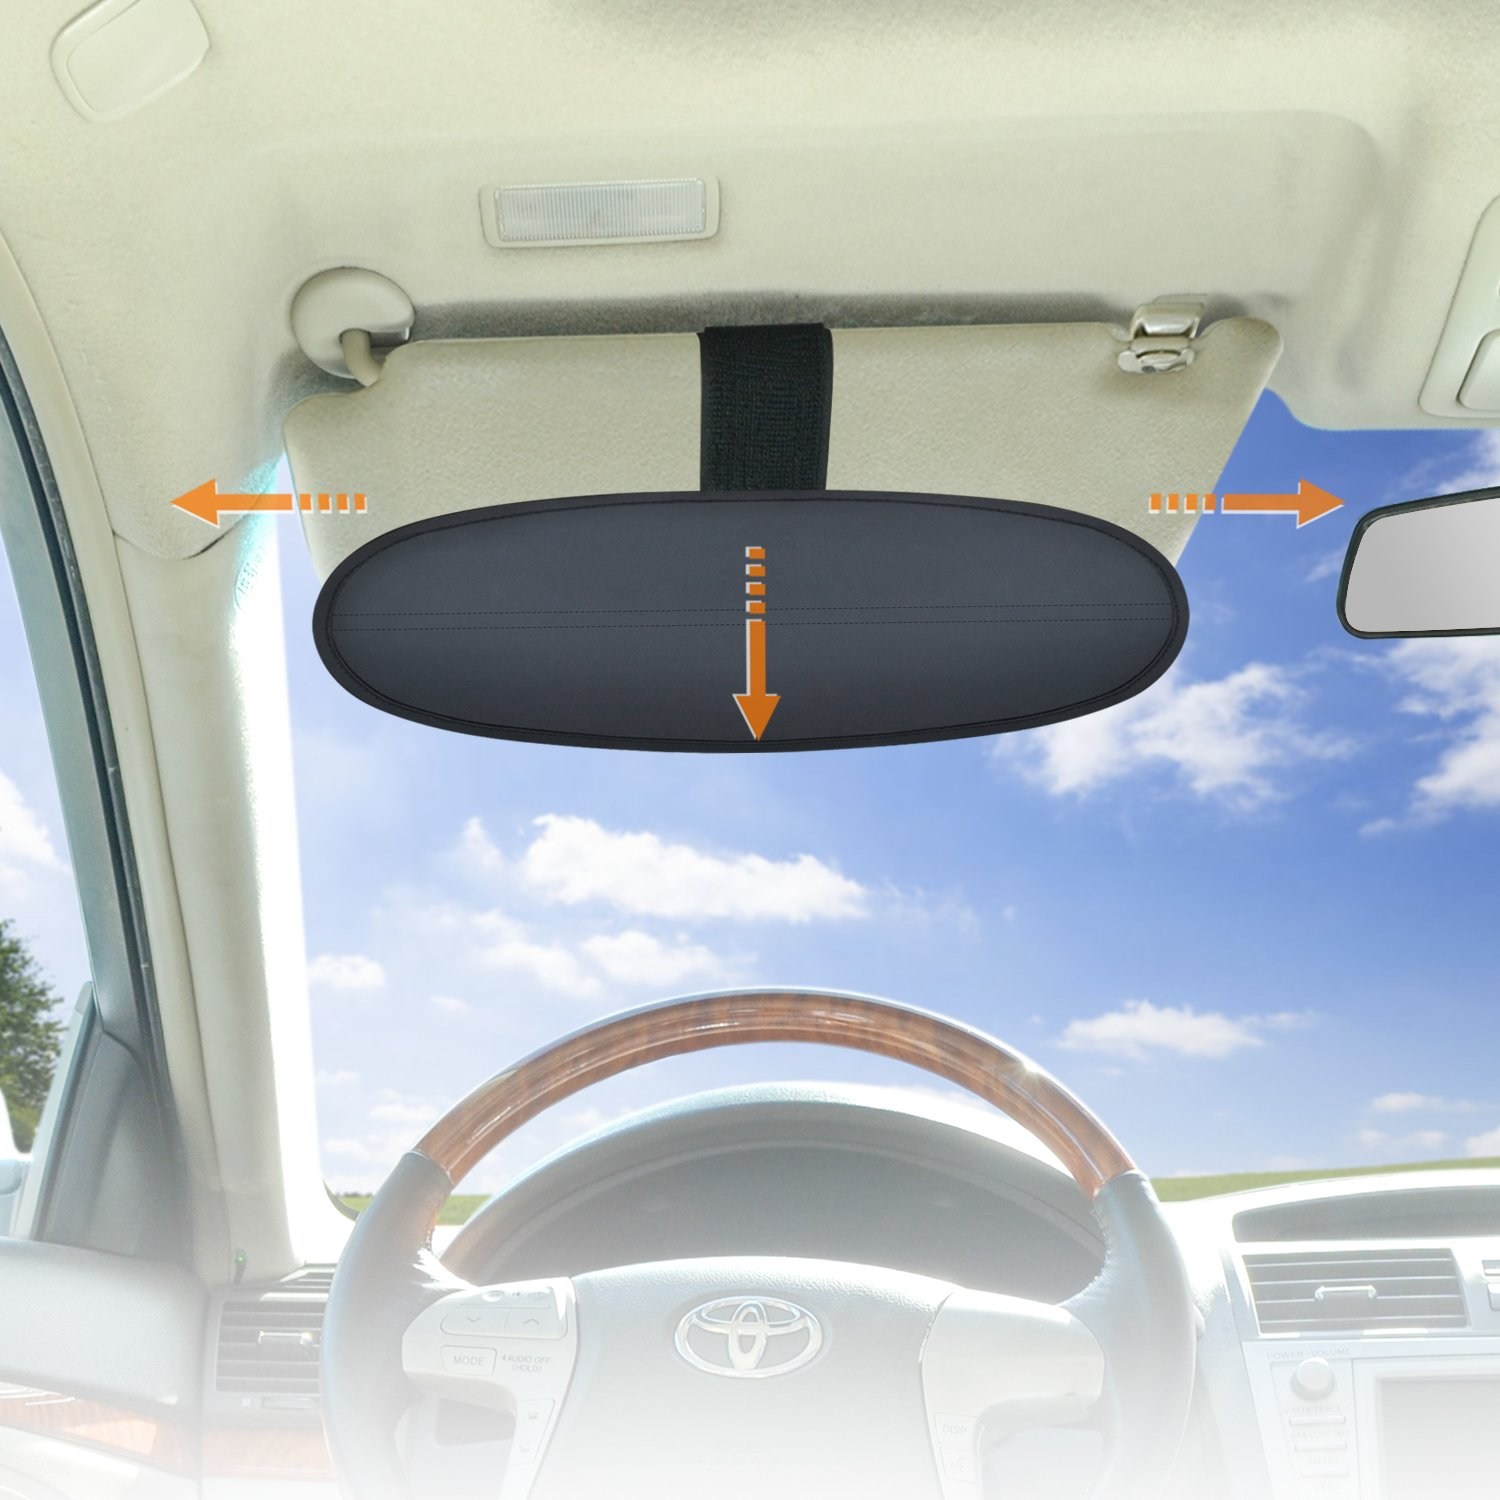 WANPOOL Anti-Glare Car Visor Sunshade Extender for Drivers or Front Seat Passengers, 1 Piece (Silver)